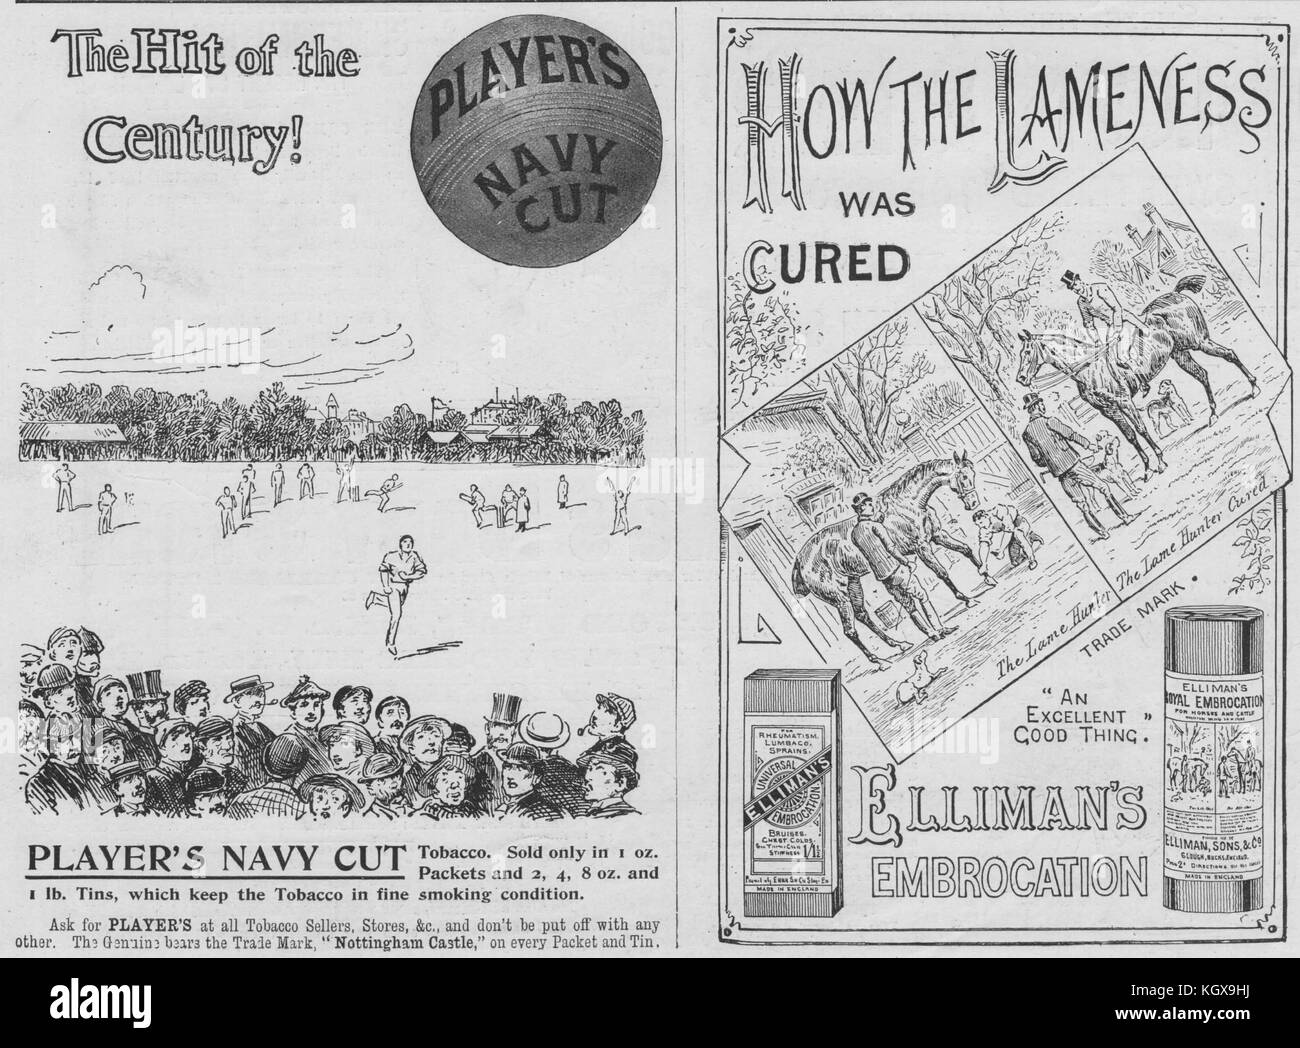 The hit of the Century Players Navy Cut. Elliman's Embrocation. Adverts 1897. The Illustrated London News - Stock Image